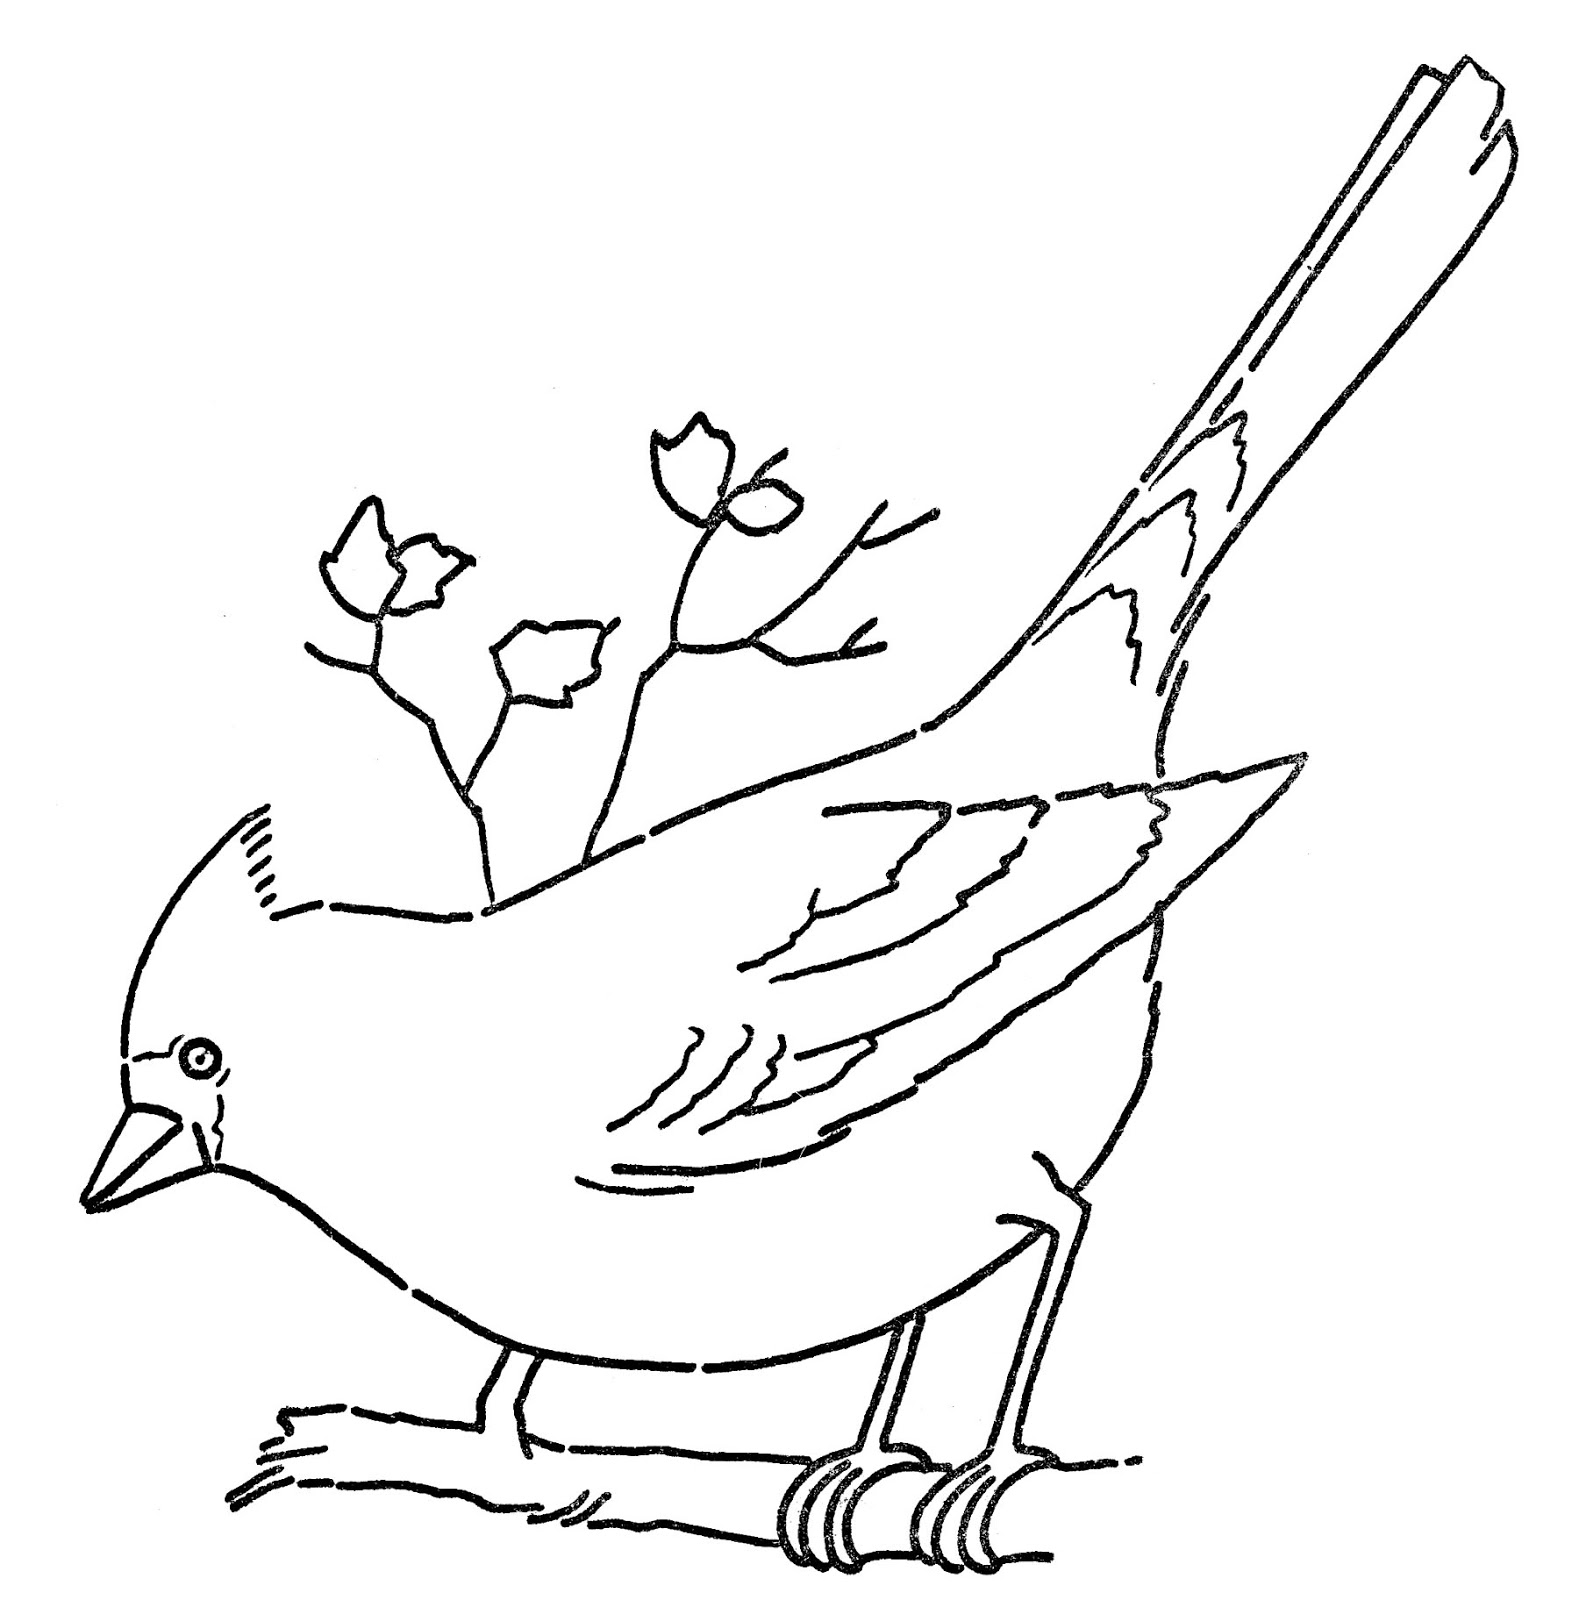 Free clipart generic bird images black and white vector library library Free Free Cardinal Clipart, Download Free Clip Art, Free Clip Art on ... vector library library